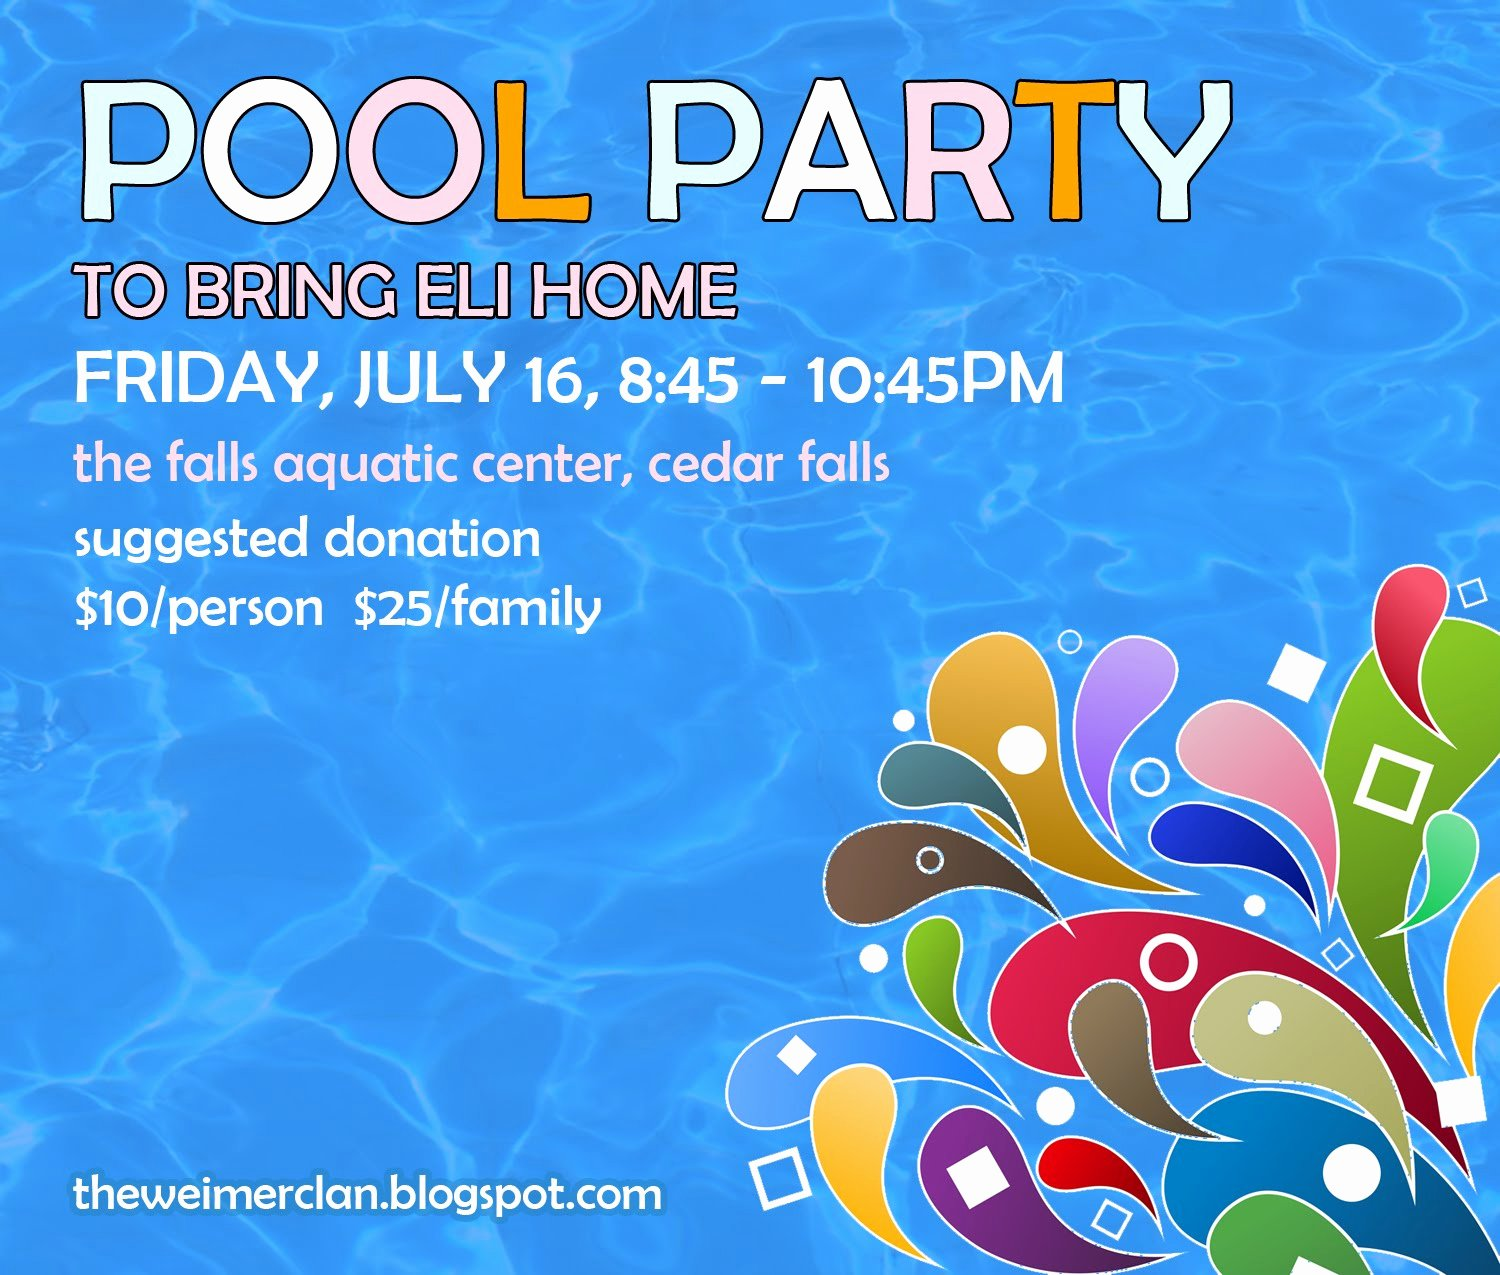 Pool Party Flyer Templates Inspirational Bring Home Eli Save the Date Pool Party